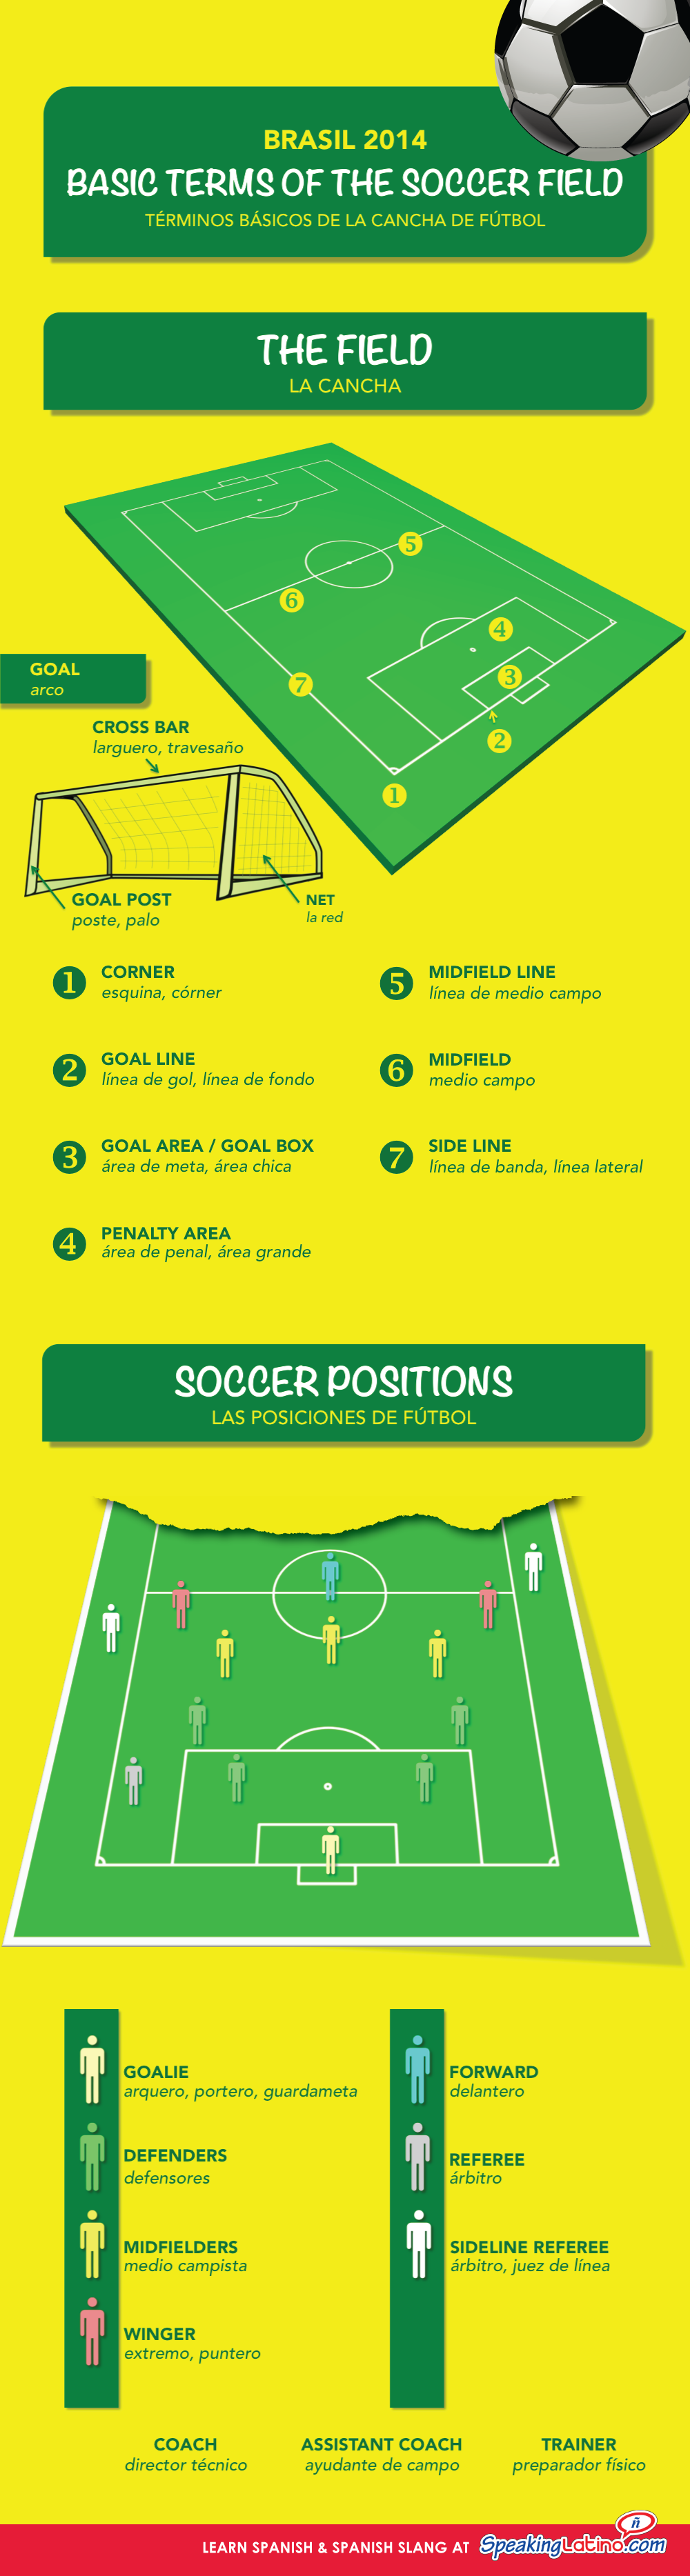 The Soccer Field In Spanish And English Infographic Soccer Positions Soccer Workouts Soccer Field